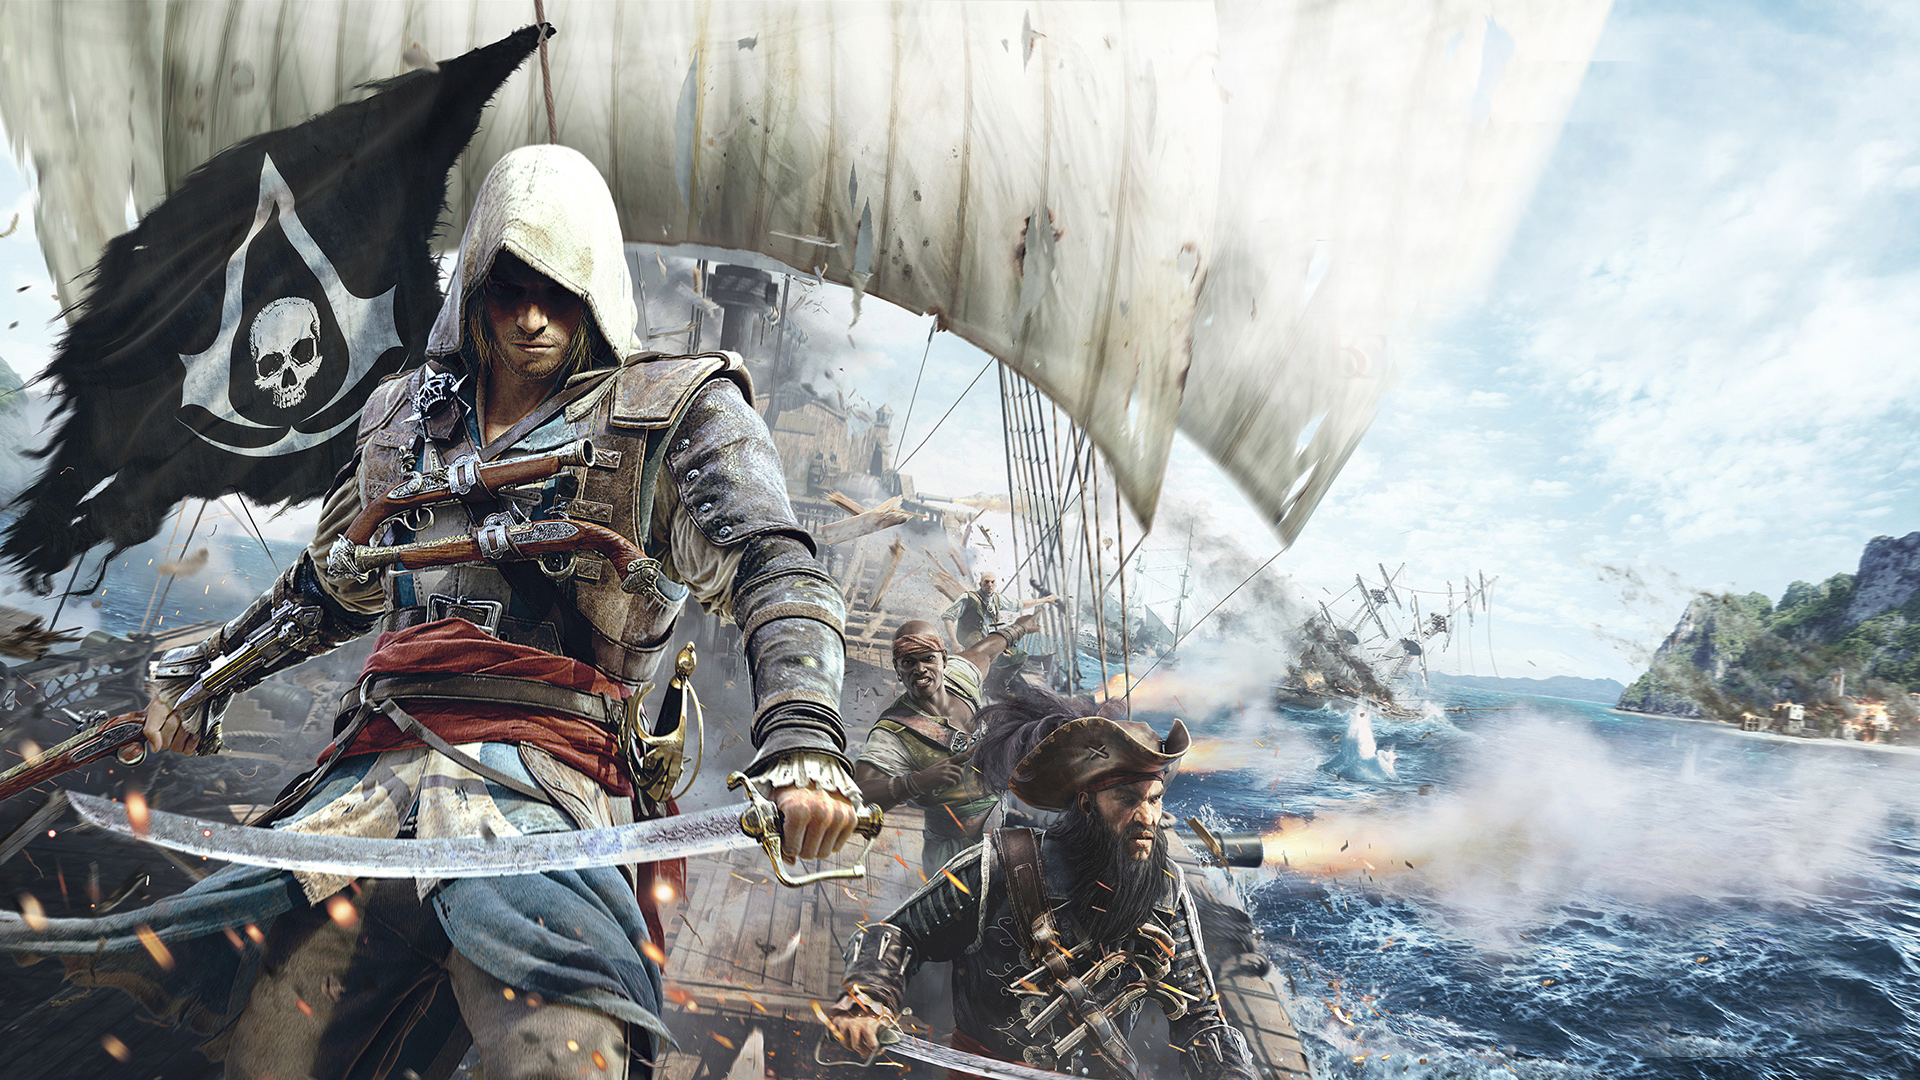 Assassins Creed 4 Black Flag Game Wallpapers Wallpapers Hd